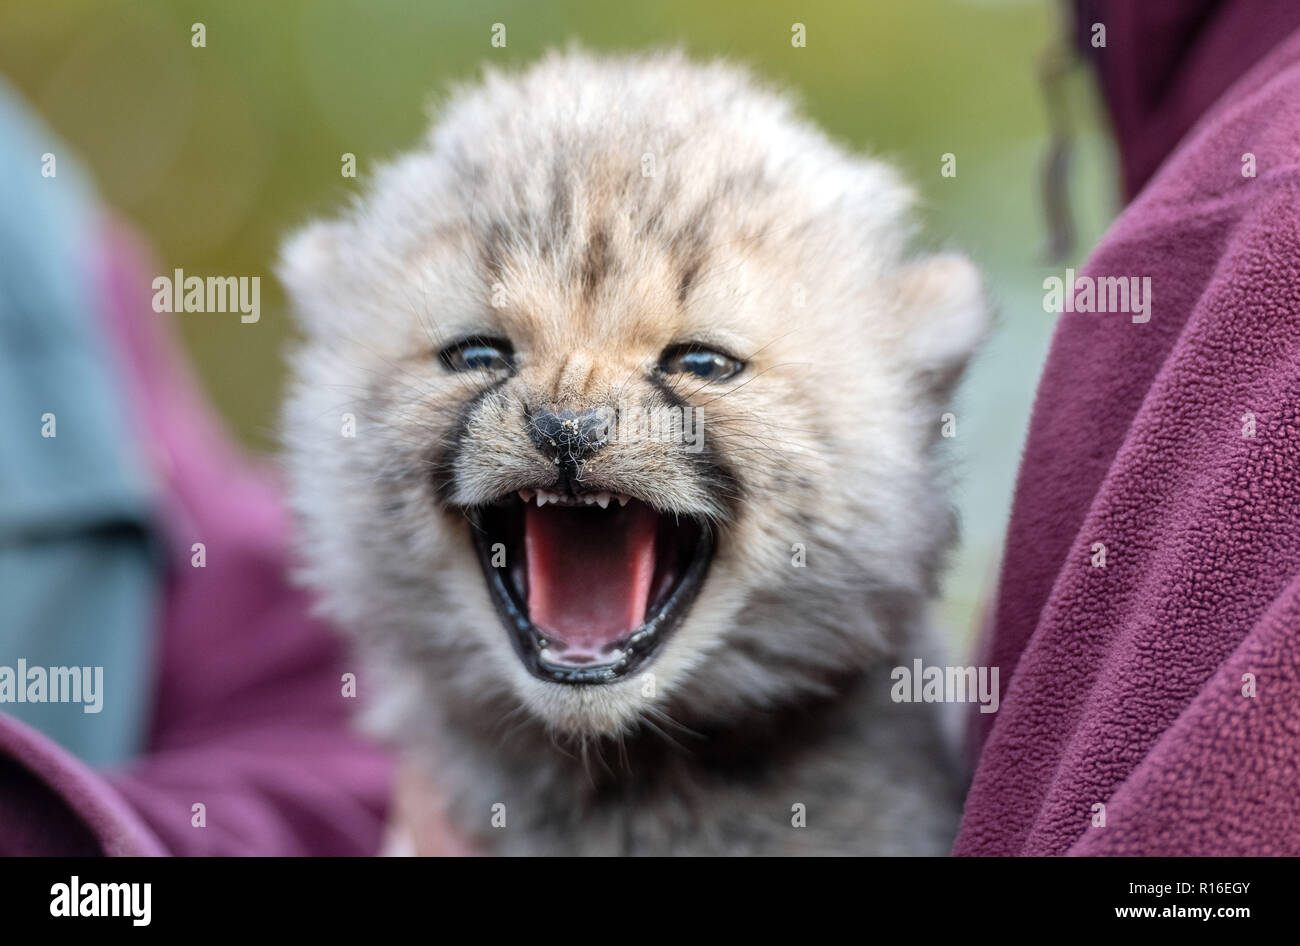 Münster Zoo, Germany. 09 November 2018, North Rhine-Westphalia, Münster: A young cheetah hisses on his nurse's arm. On 4 October three young animals were born in the all-weather zoo. Breeding the animals is considered difficult. Photo: Bernd Thissen/dpa Credit: dpa picture alliance/Alamy Live News - Stock Image